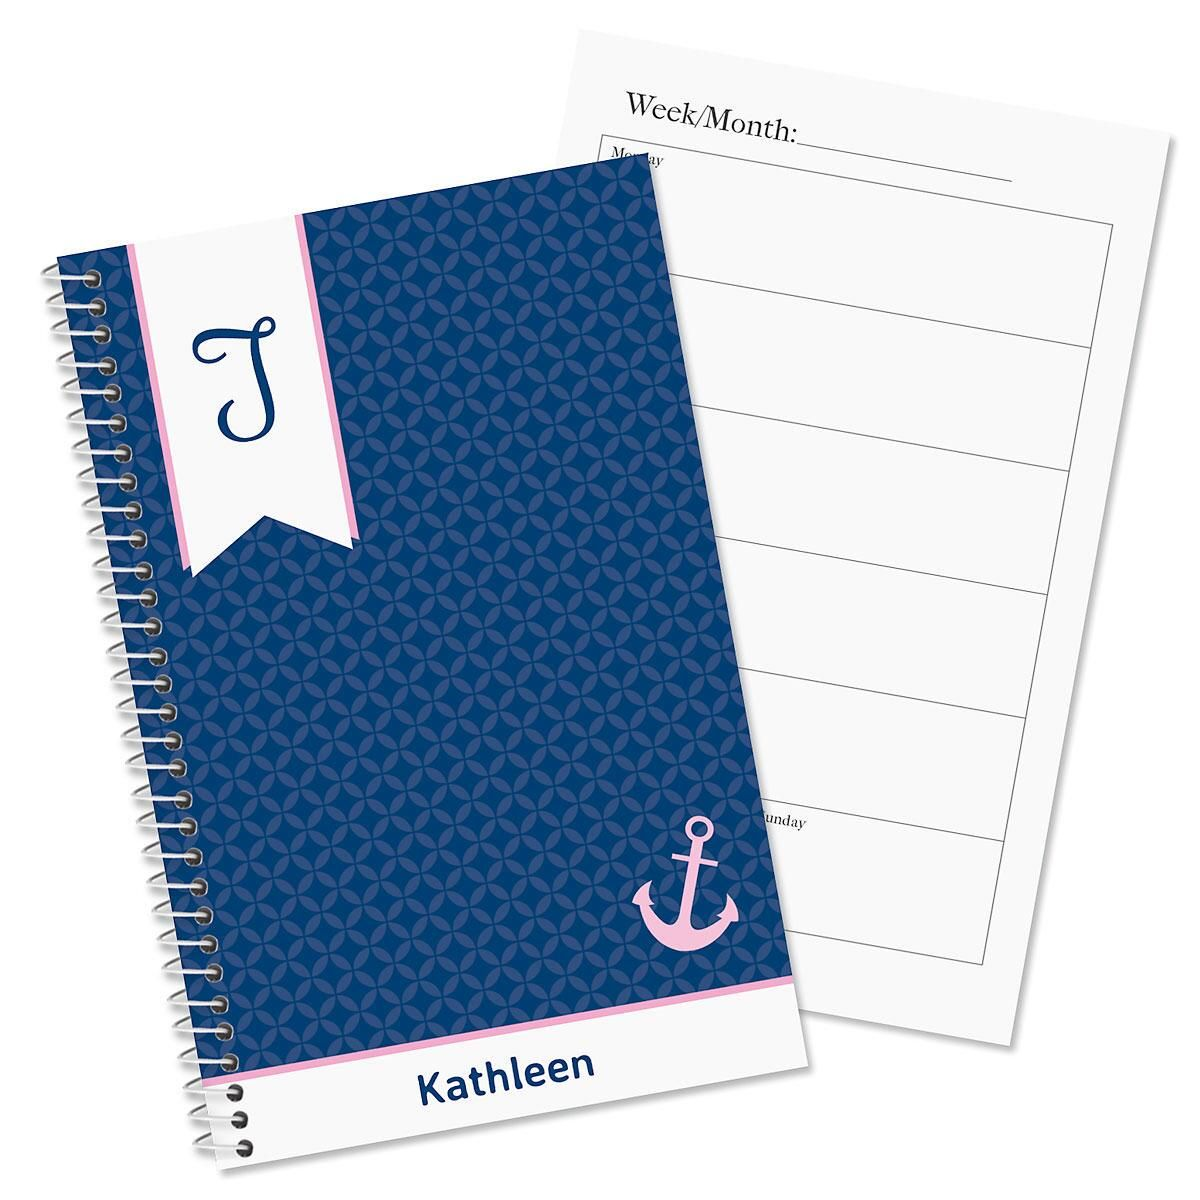 Ribbon initial personalized planner colorful images for Custom photo planner